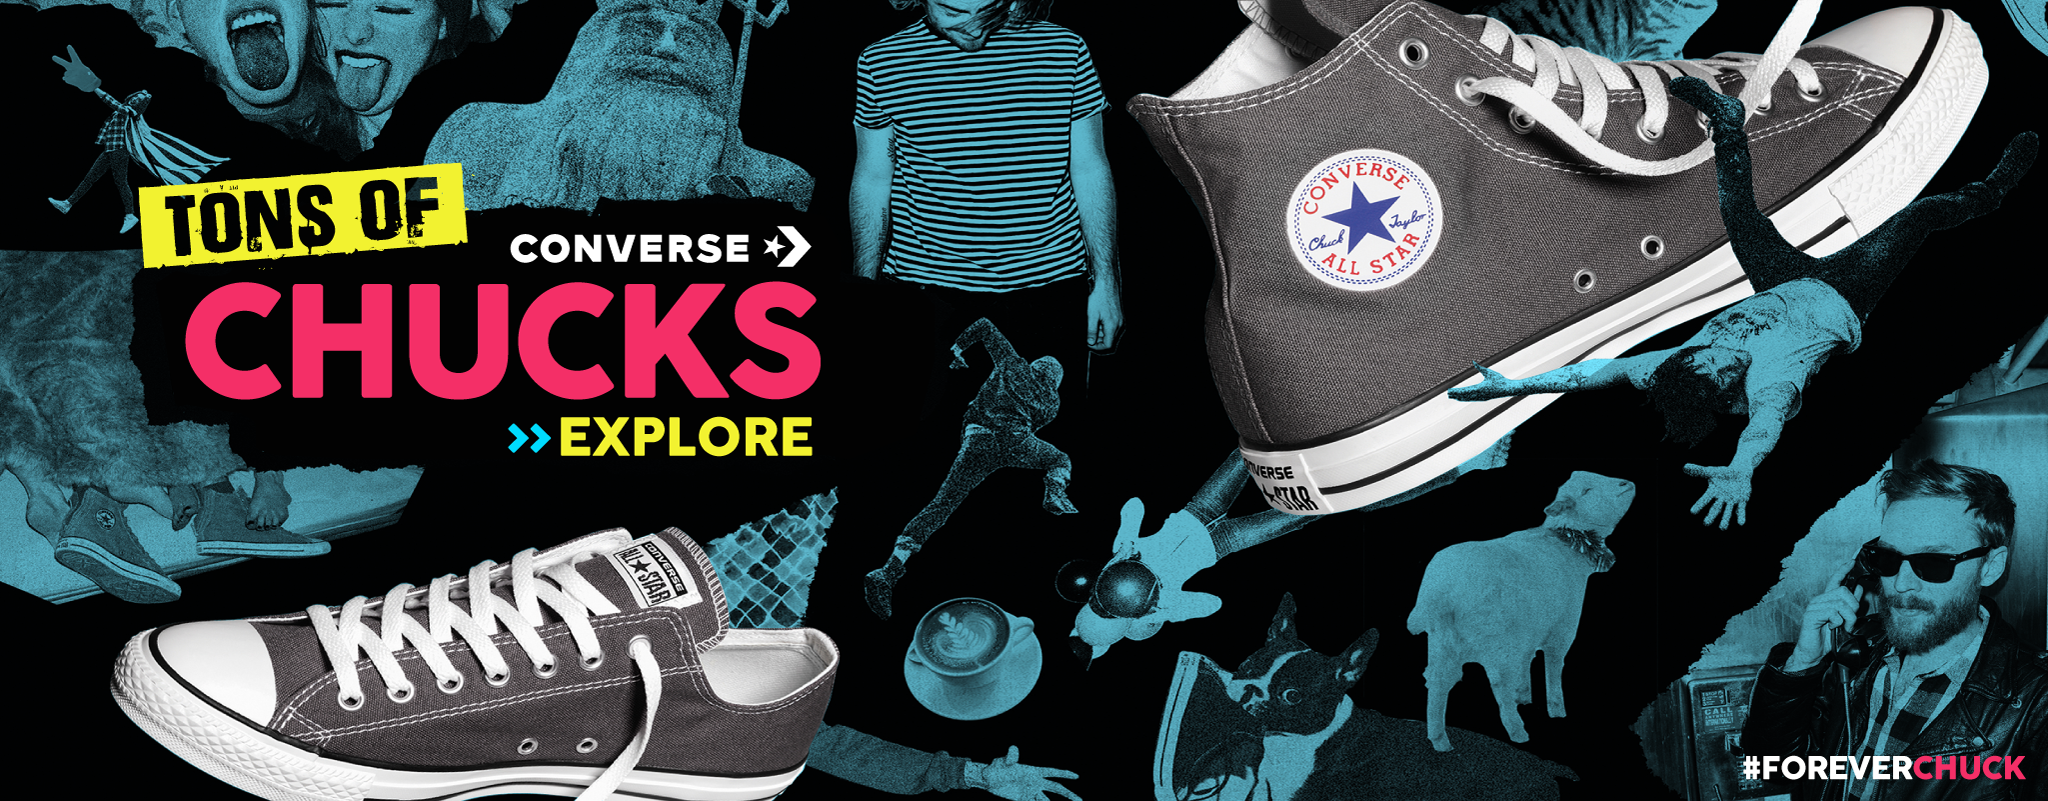 Converse - Men's, Women's & Kid's Footwear, Apparel and Accessories